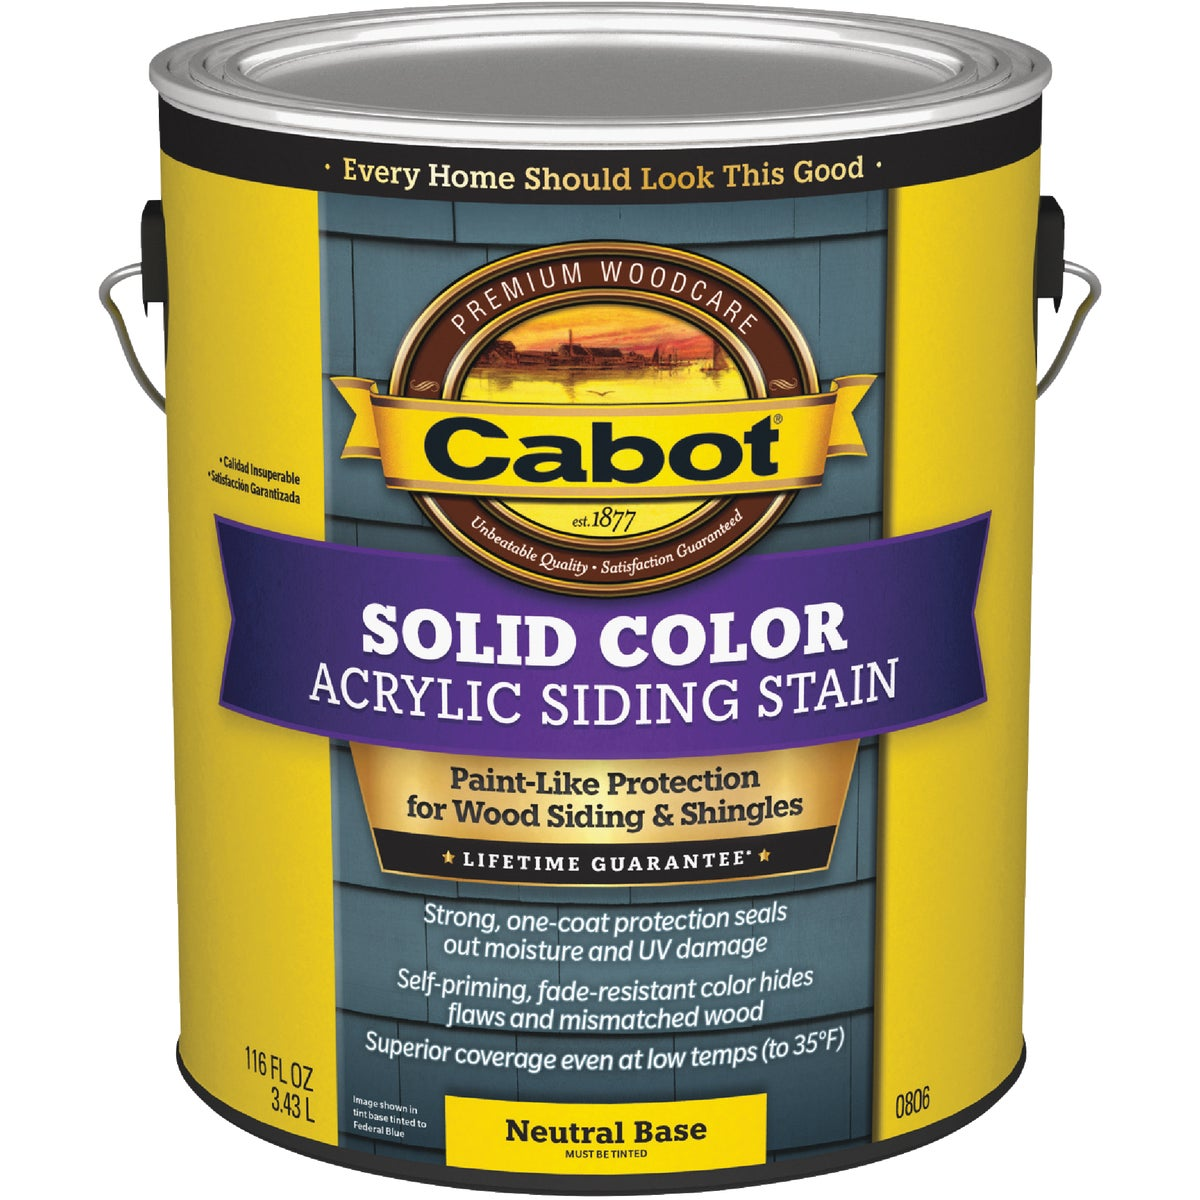 NEUT BS PRO SOLID STAIN - 140.0000806.007 by Valspar Corp